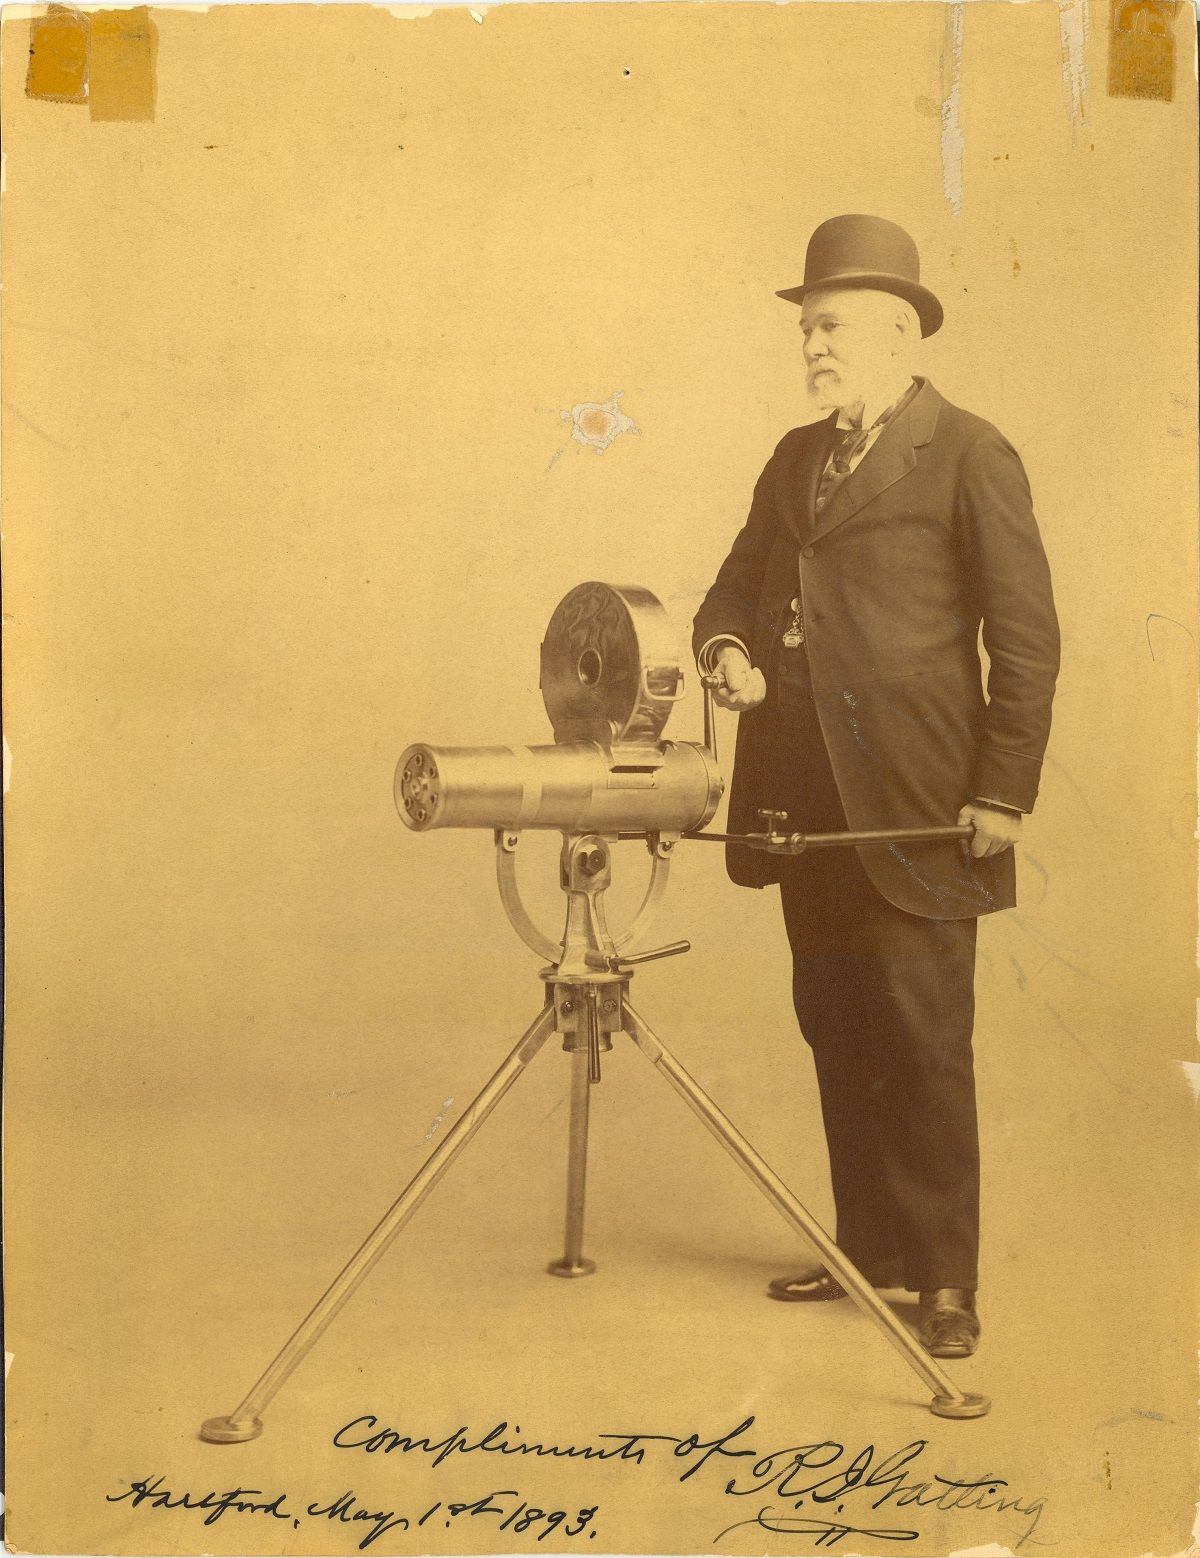 10. Richard Gatling – The Gatling Gun